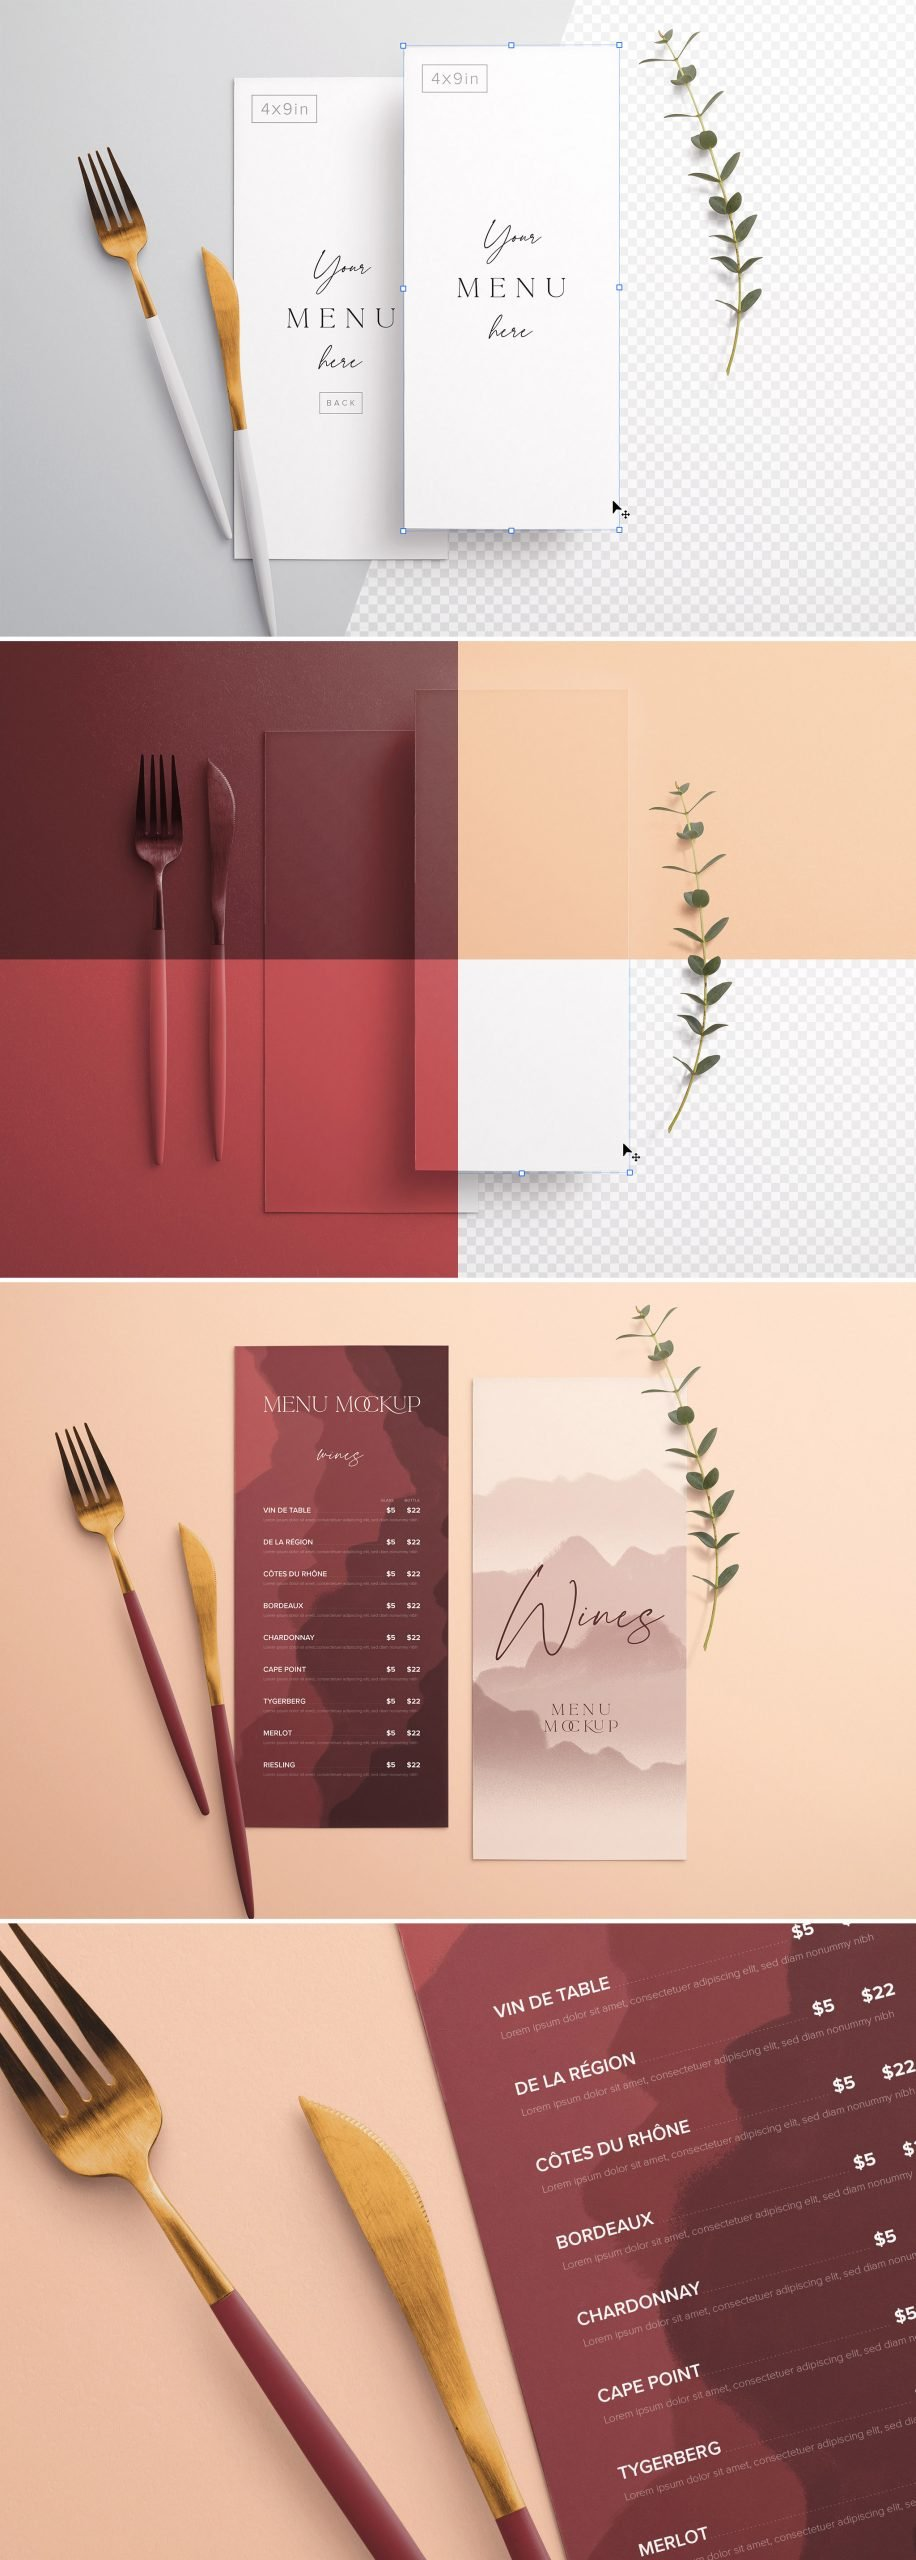 Table 4X9In Menu with Cutleries And Eucalyptus Preview scaled